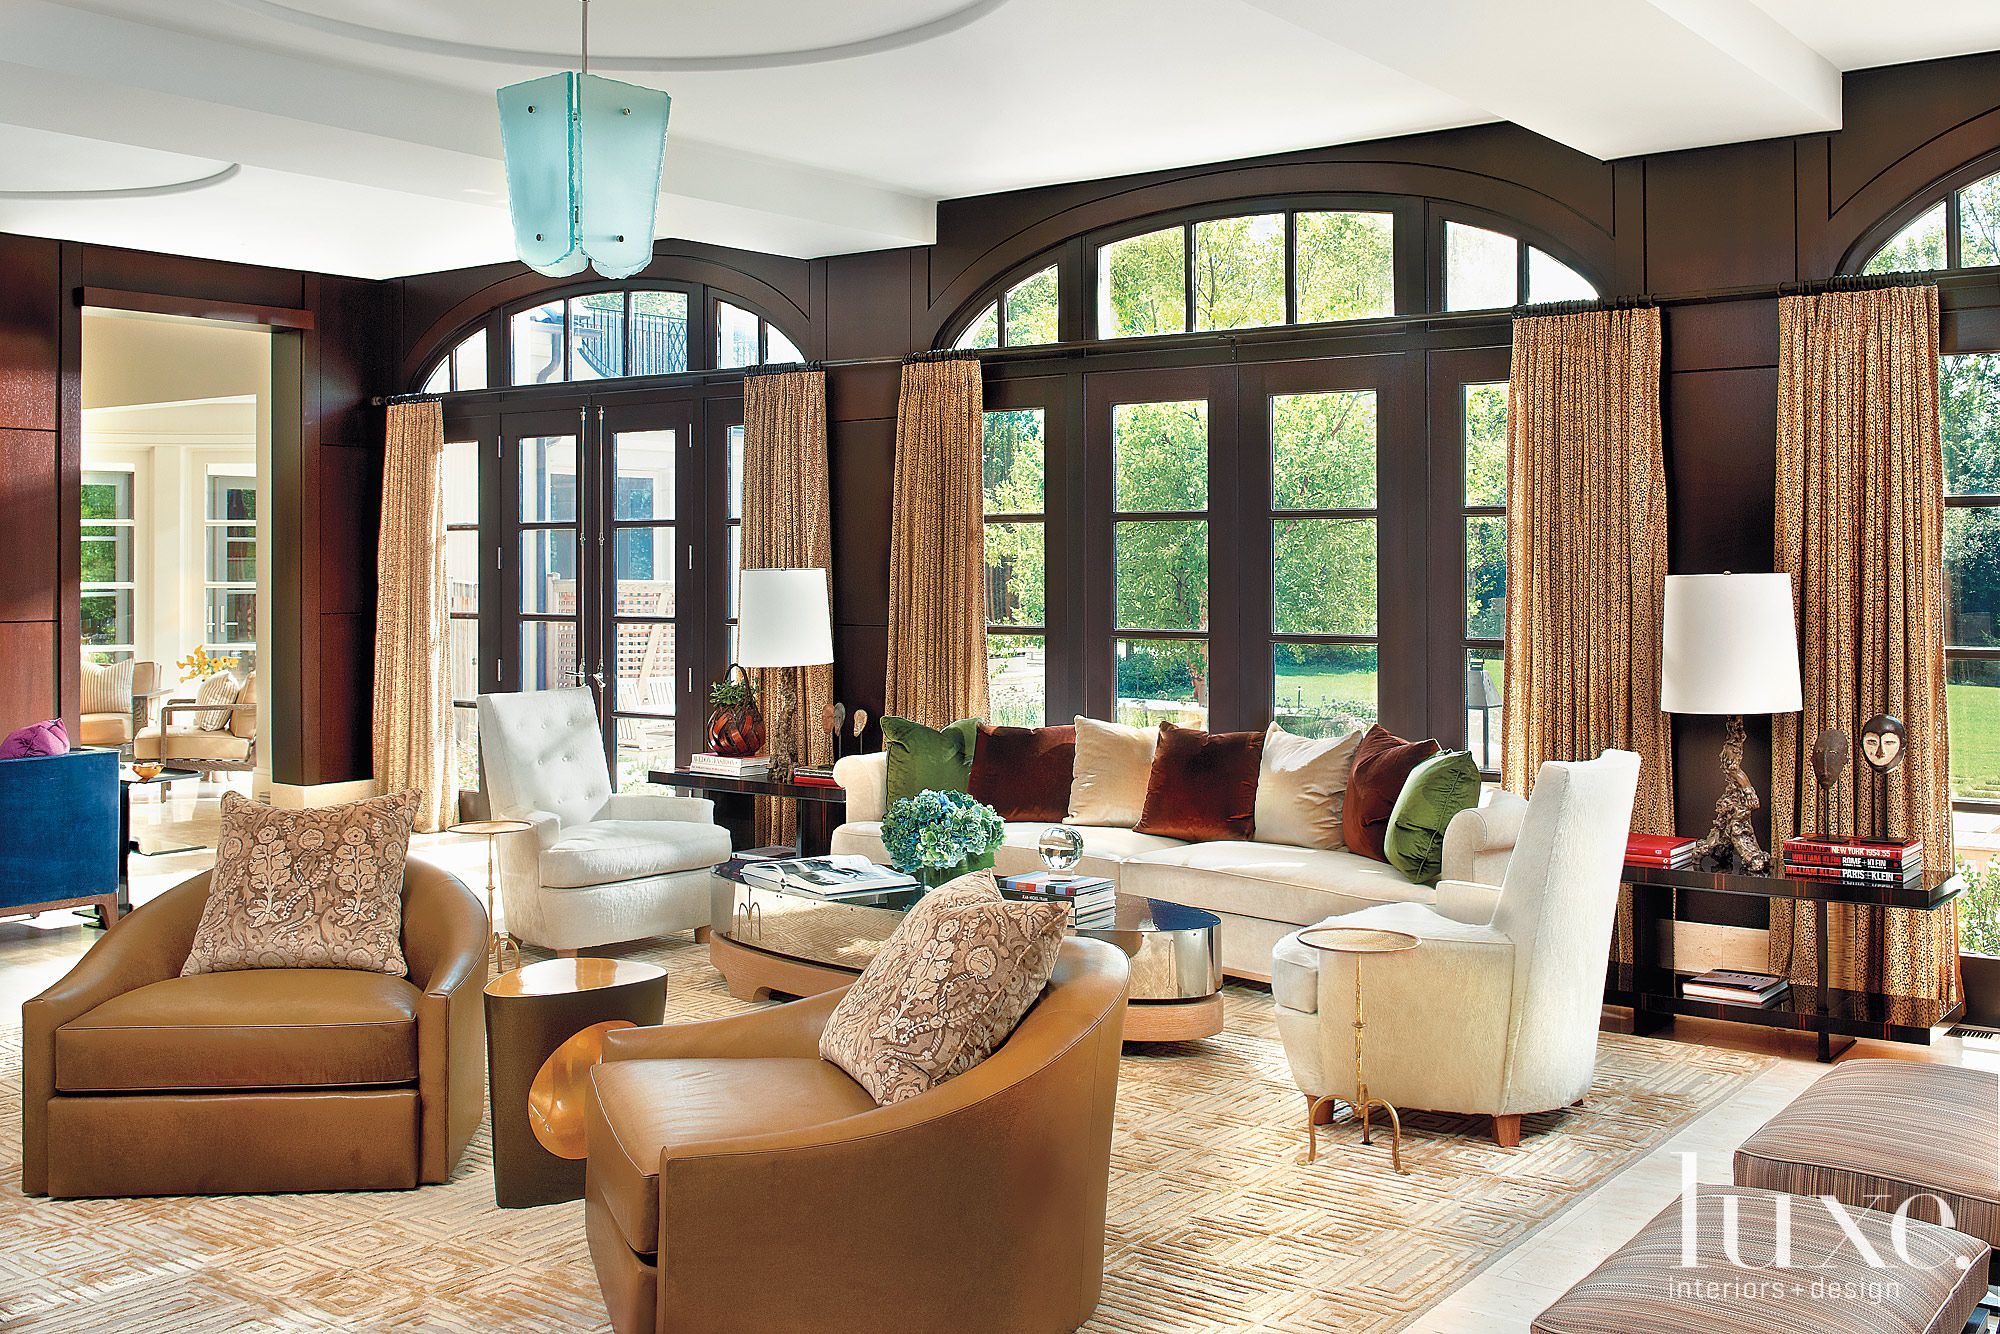 Transitional Brown Great Room with Expansive Arched Windows